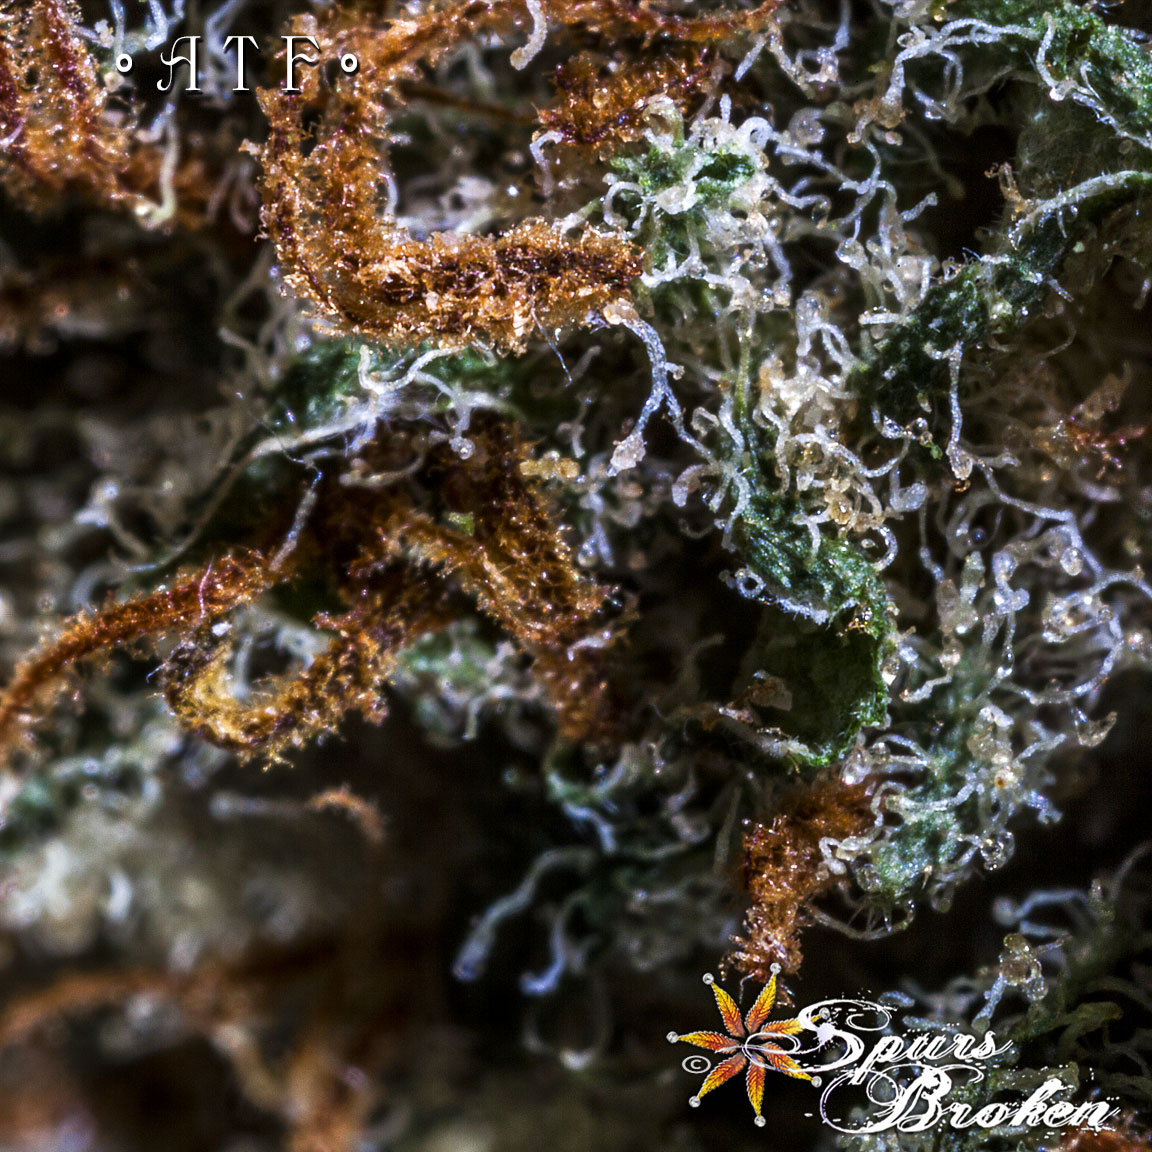 ATF (Alaska Thunder Fuck) - Cannabis Macro Photography by Spurs Broken (Robert R. Sanders)